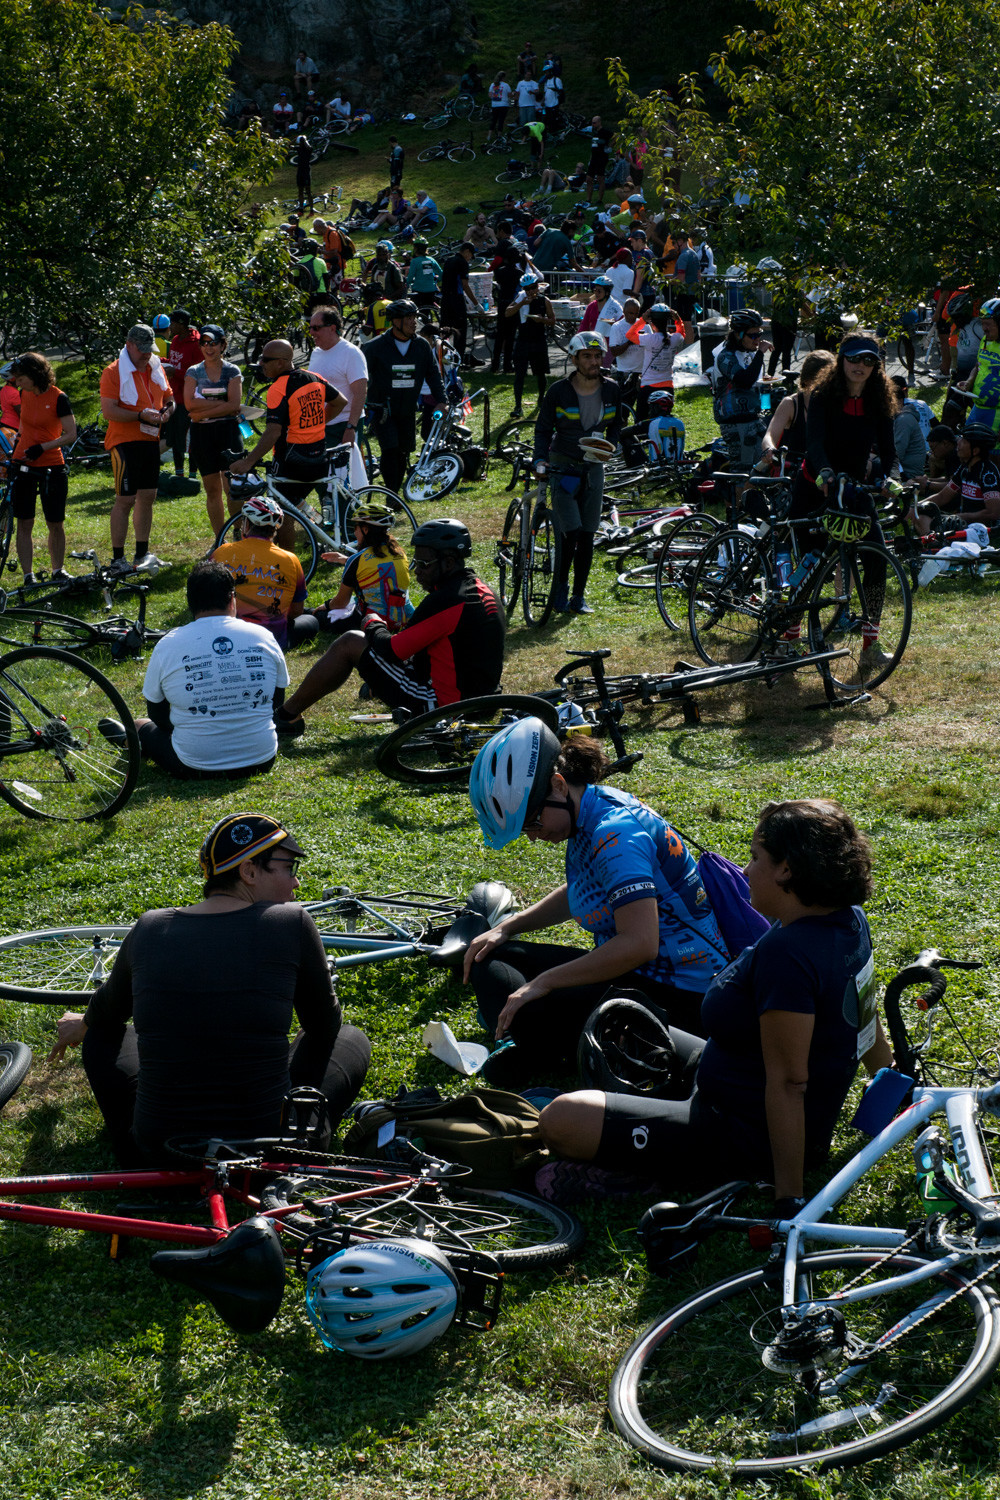 Cyclists rest on the grass in the New York Botanical Garden at the end of the Tour de Bronx.